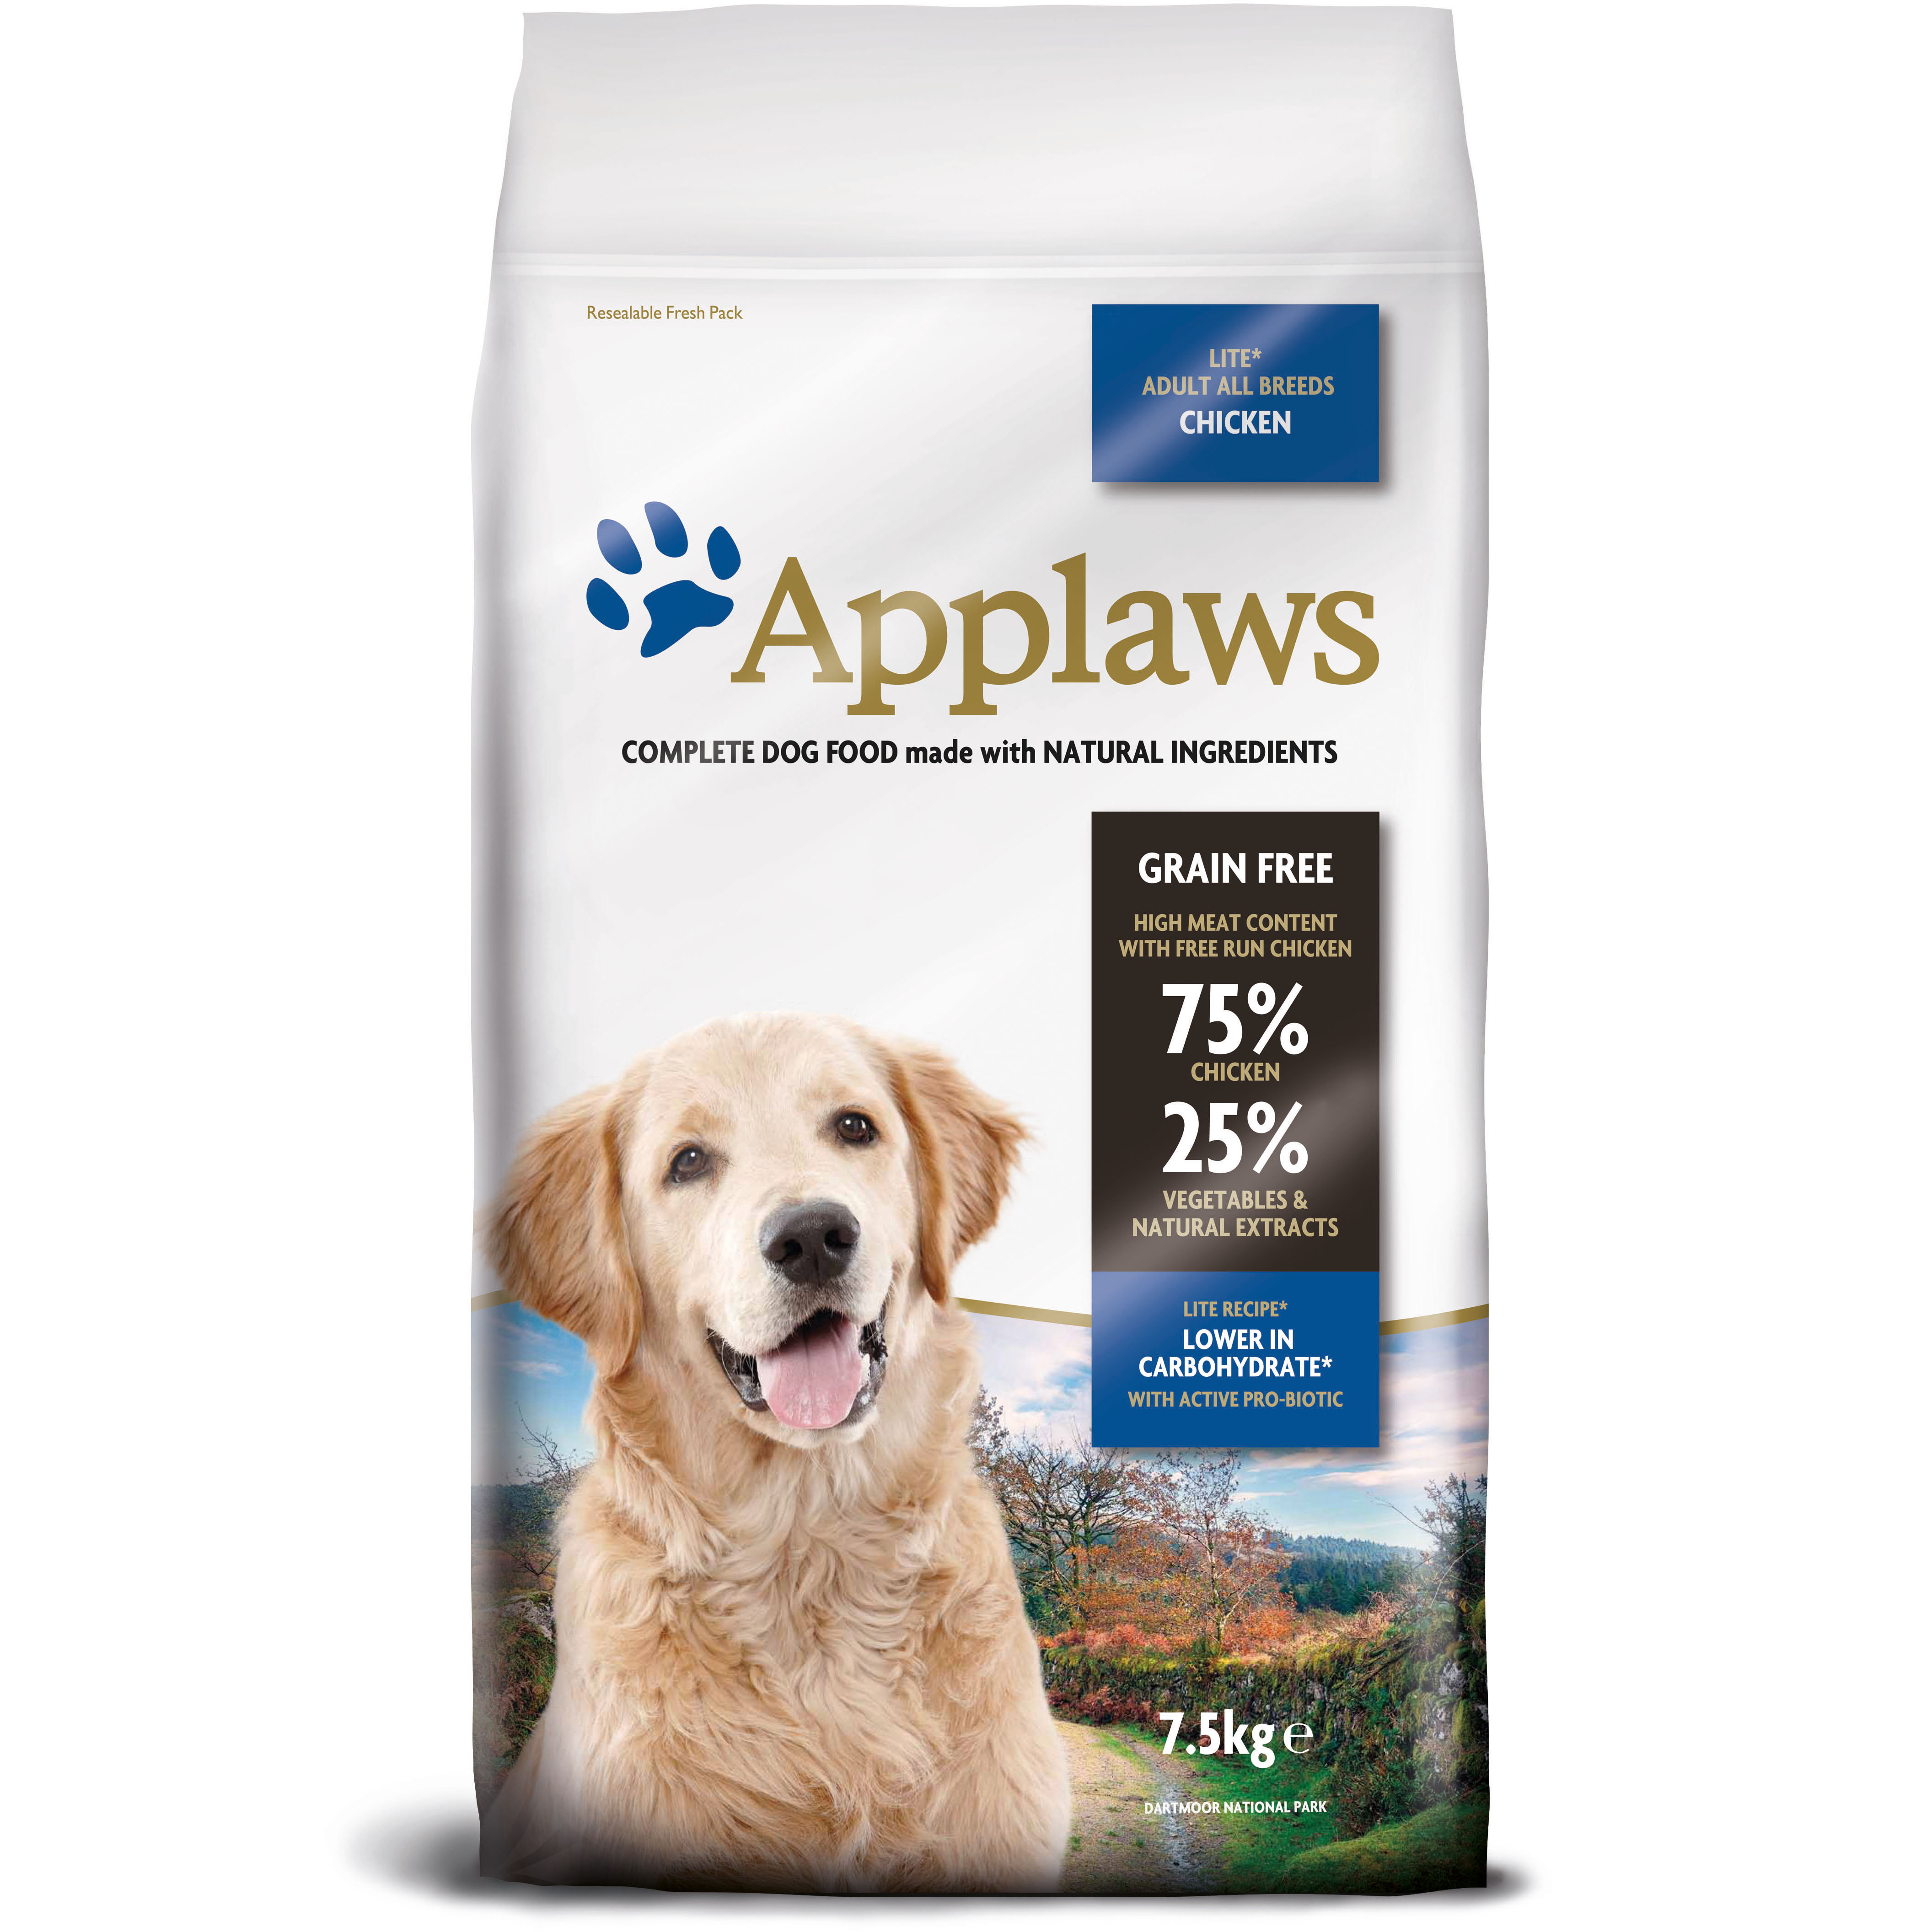 Applaws Adult Light All Breeds Chicken Dog Food